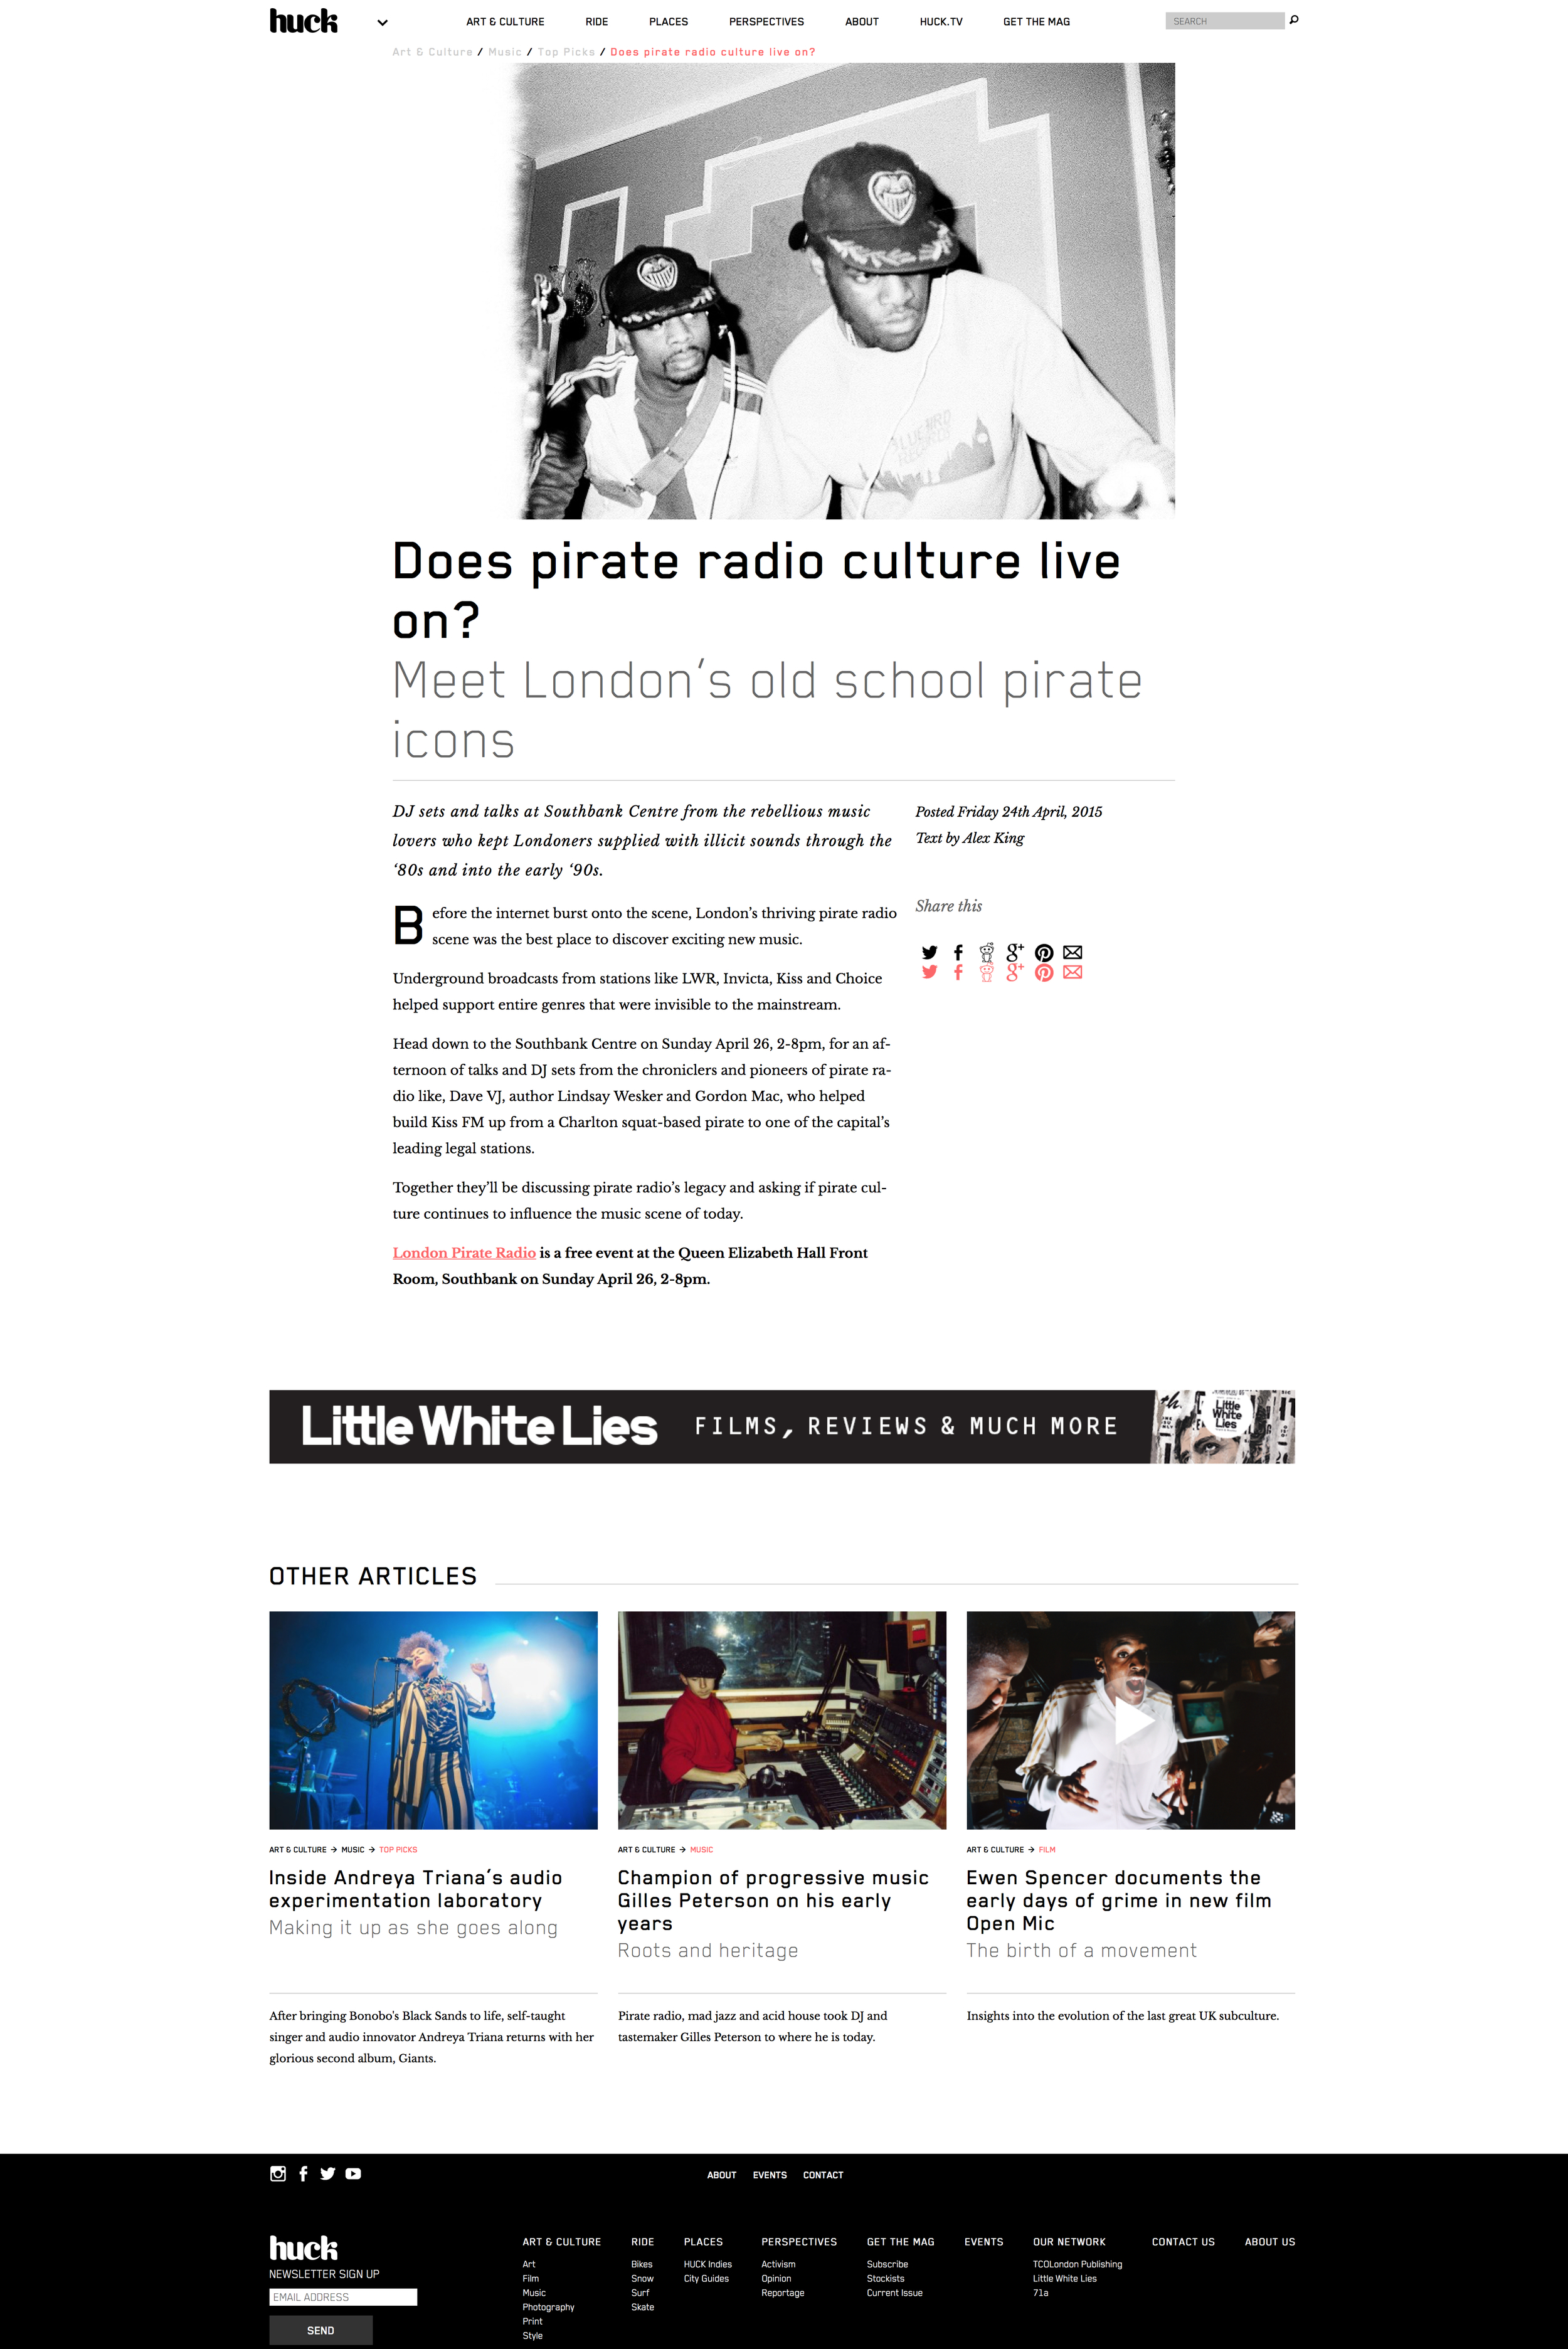 Does pirate radio culture live on? (20150512).jpg